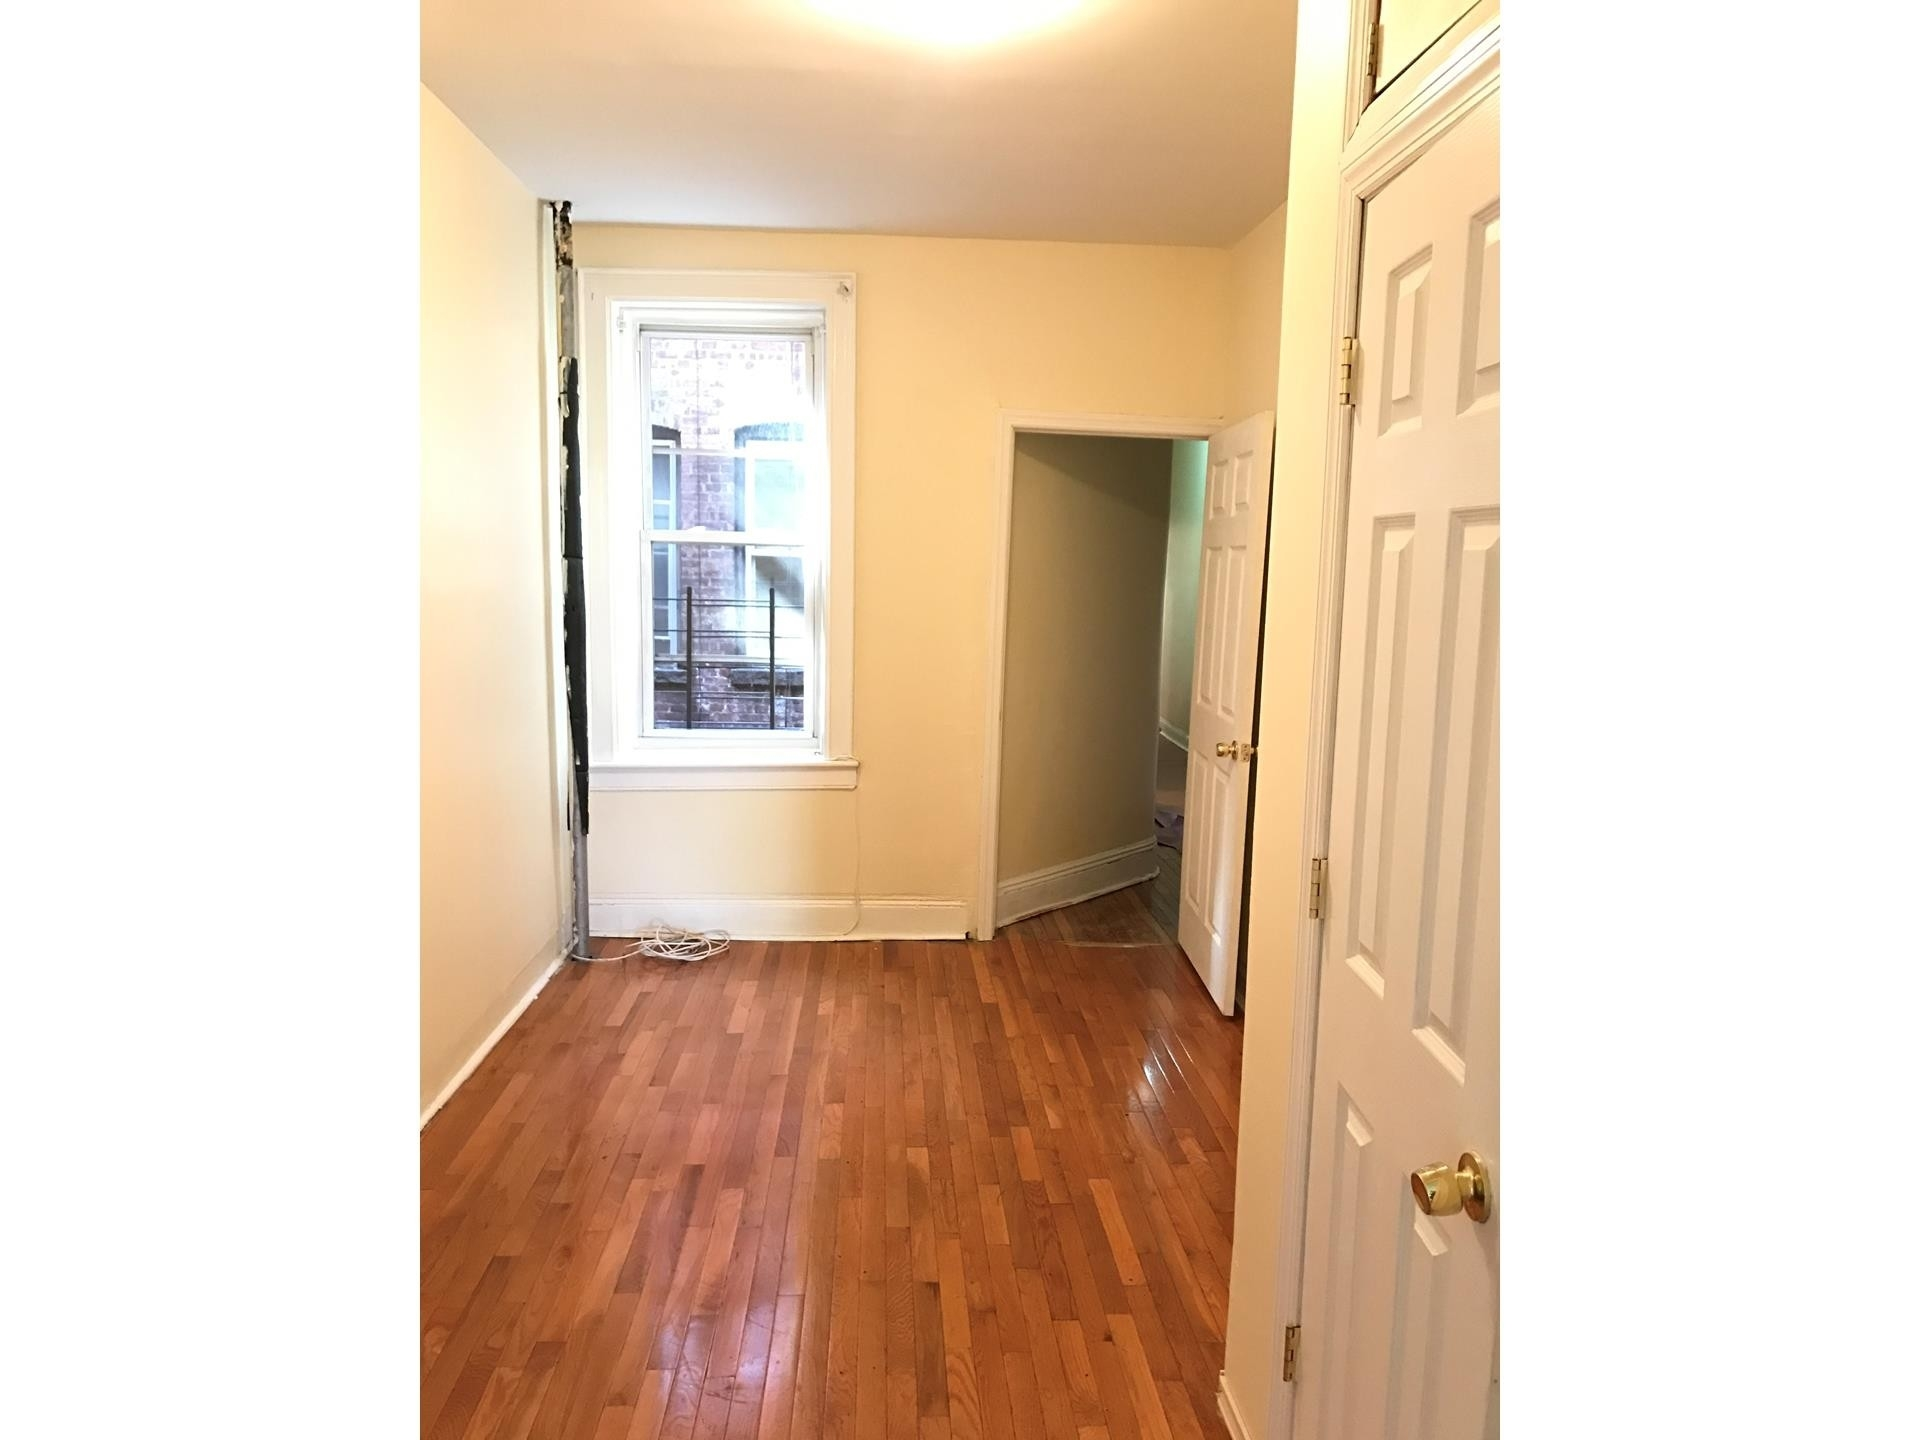 4. 建於1288 Sterling Pl, Crown Heights, Brooklyn, NY